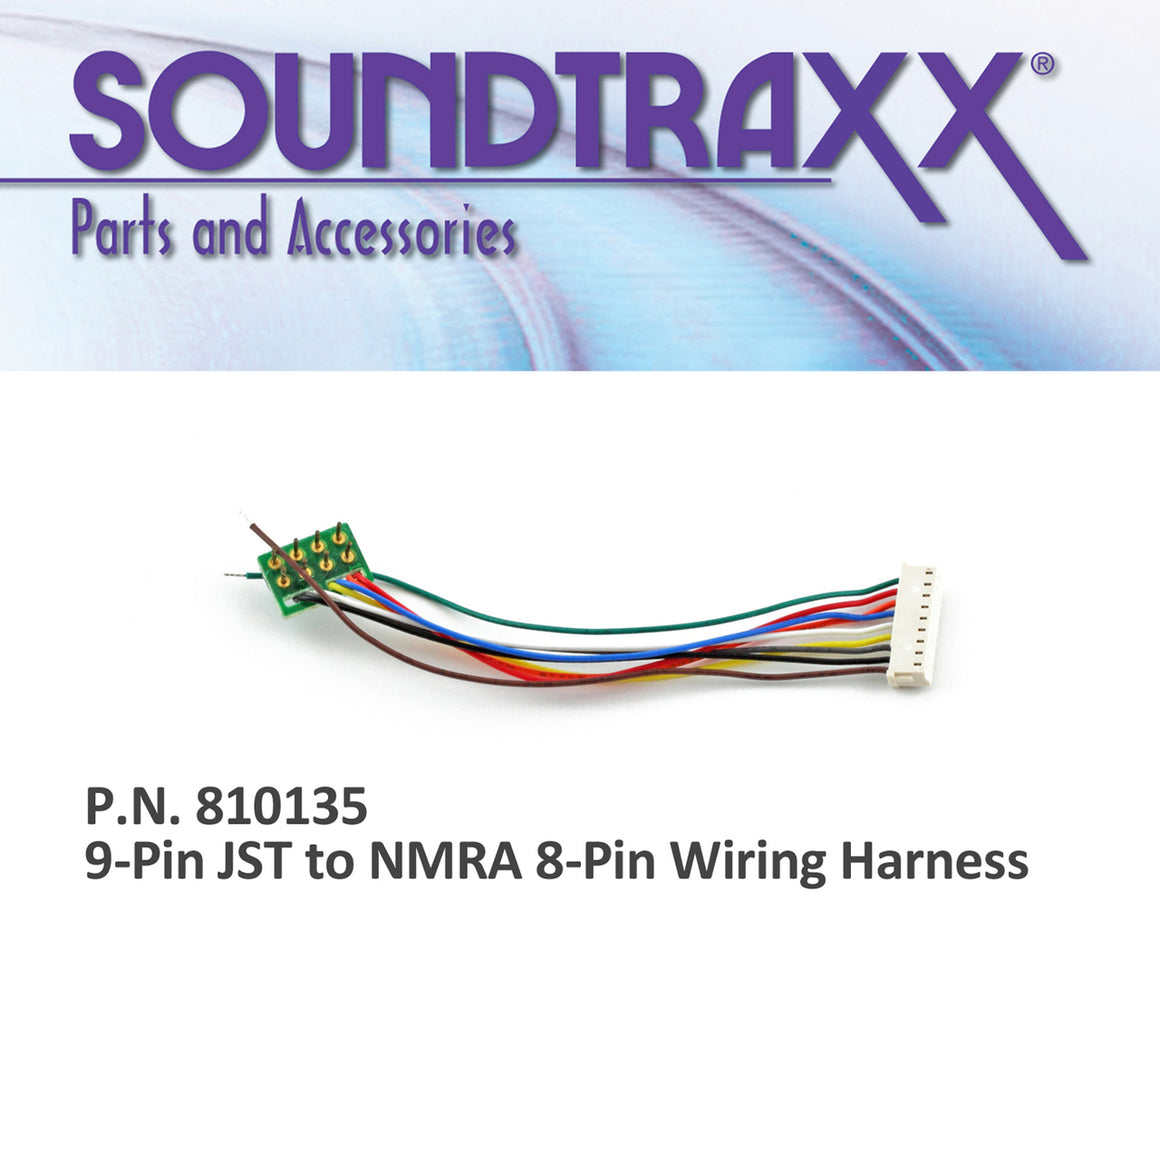 Wiring Harness: 9-Pin JST to NMRA 8-Pin